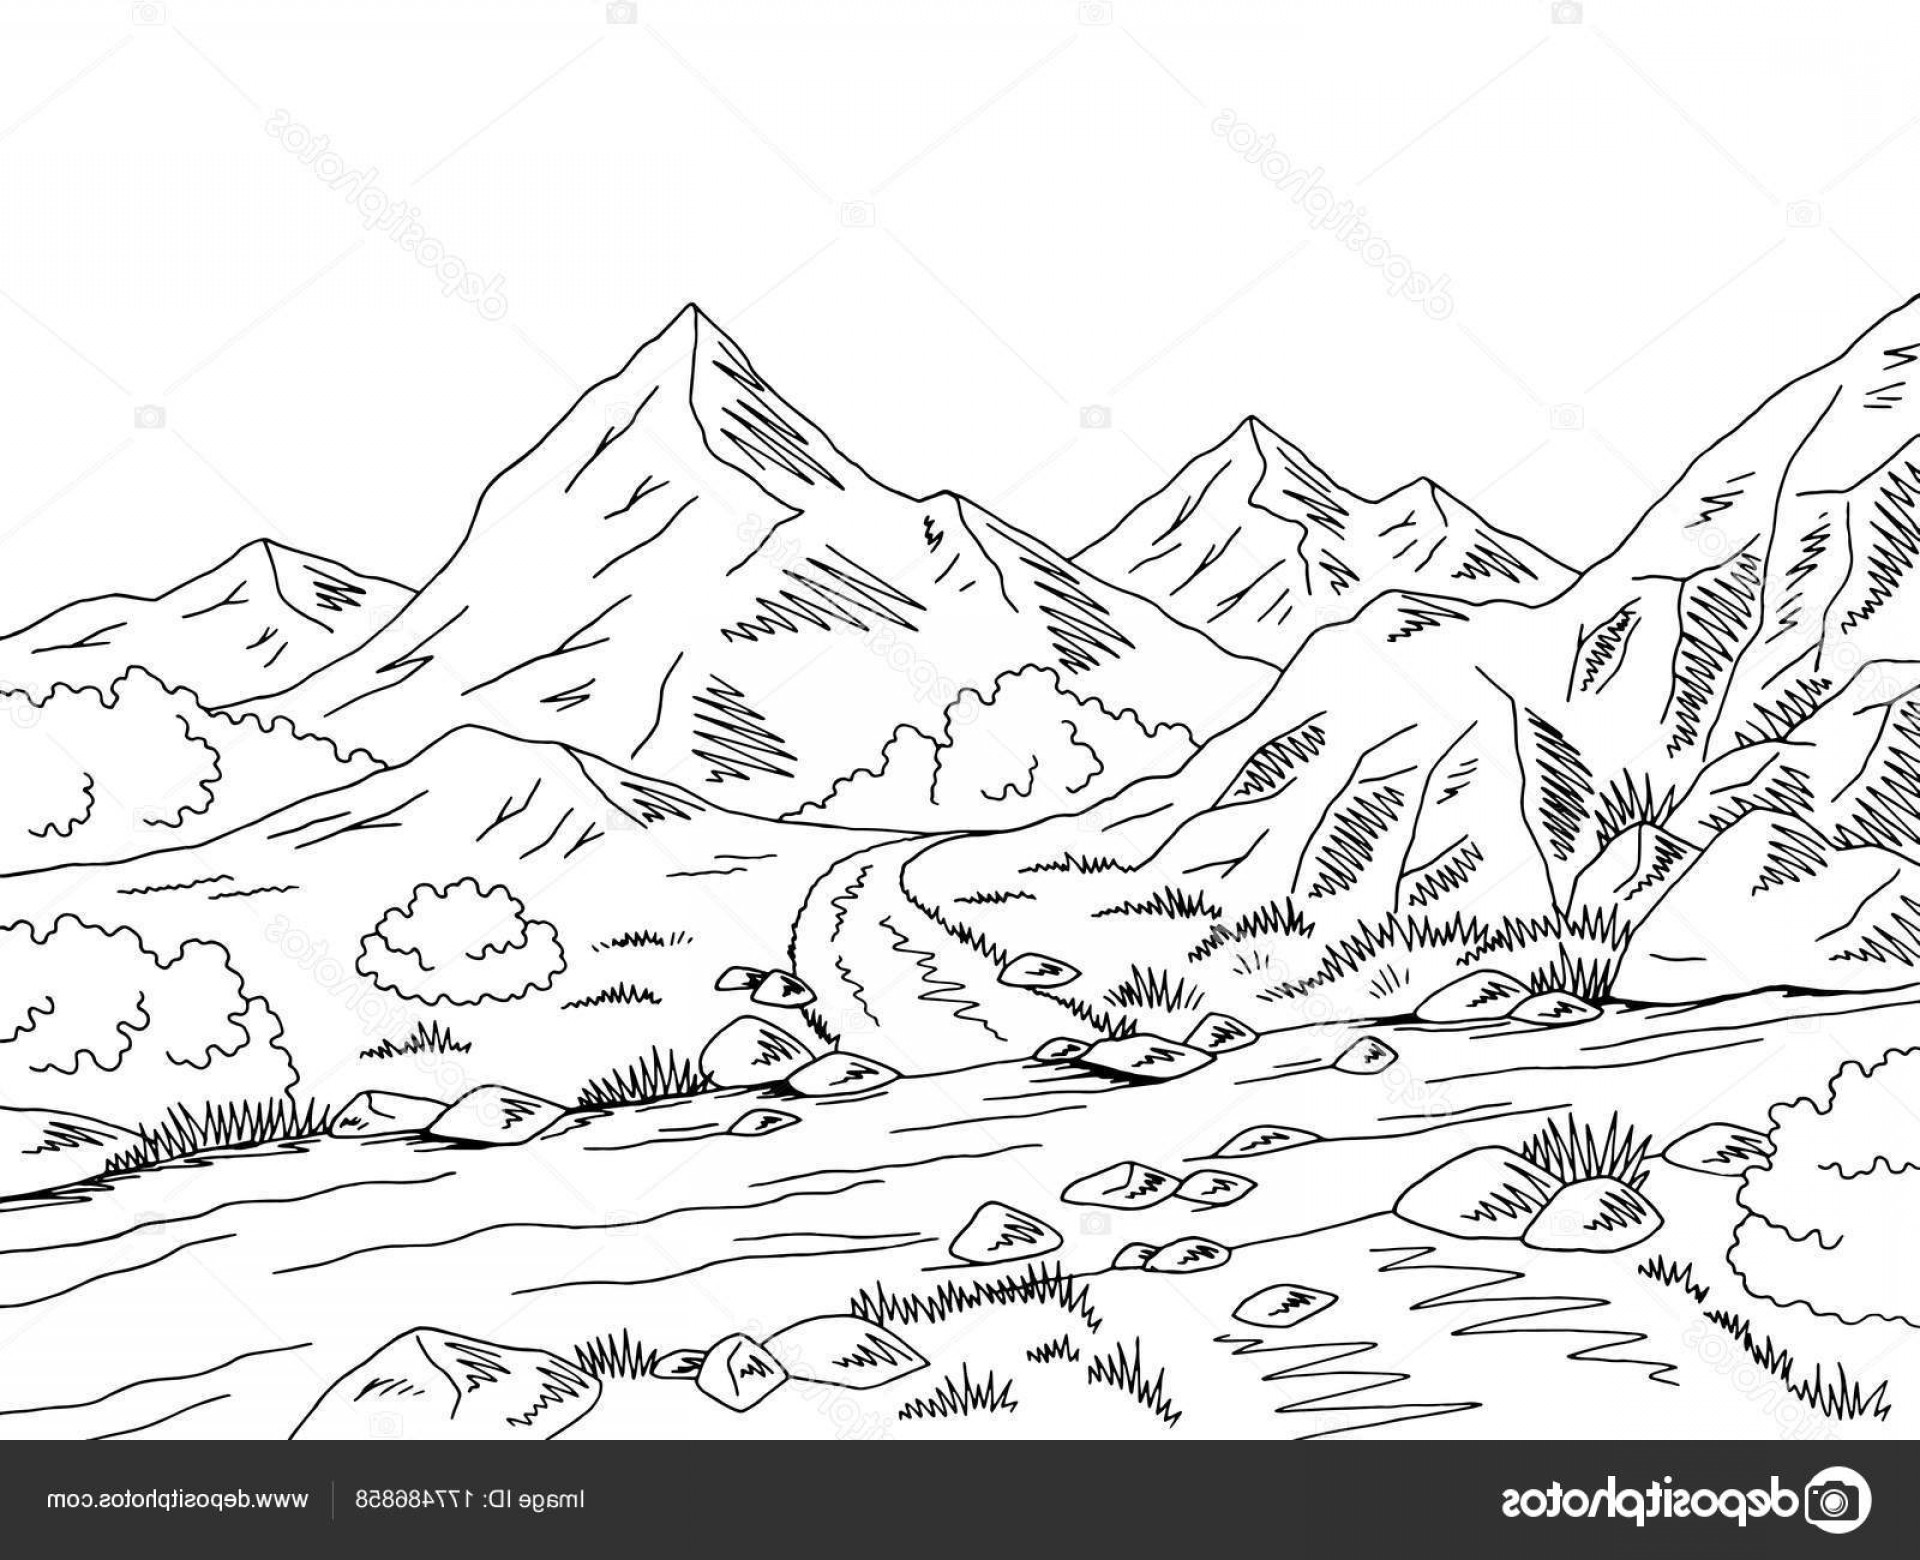 Ford Vector Art: Stock Illustration Mountain Road Graphic Black White